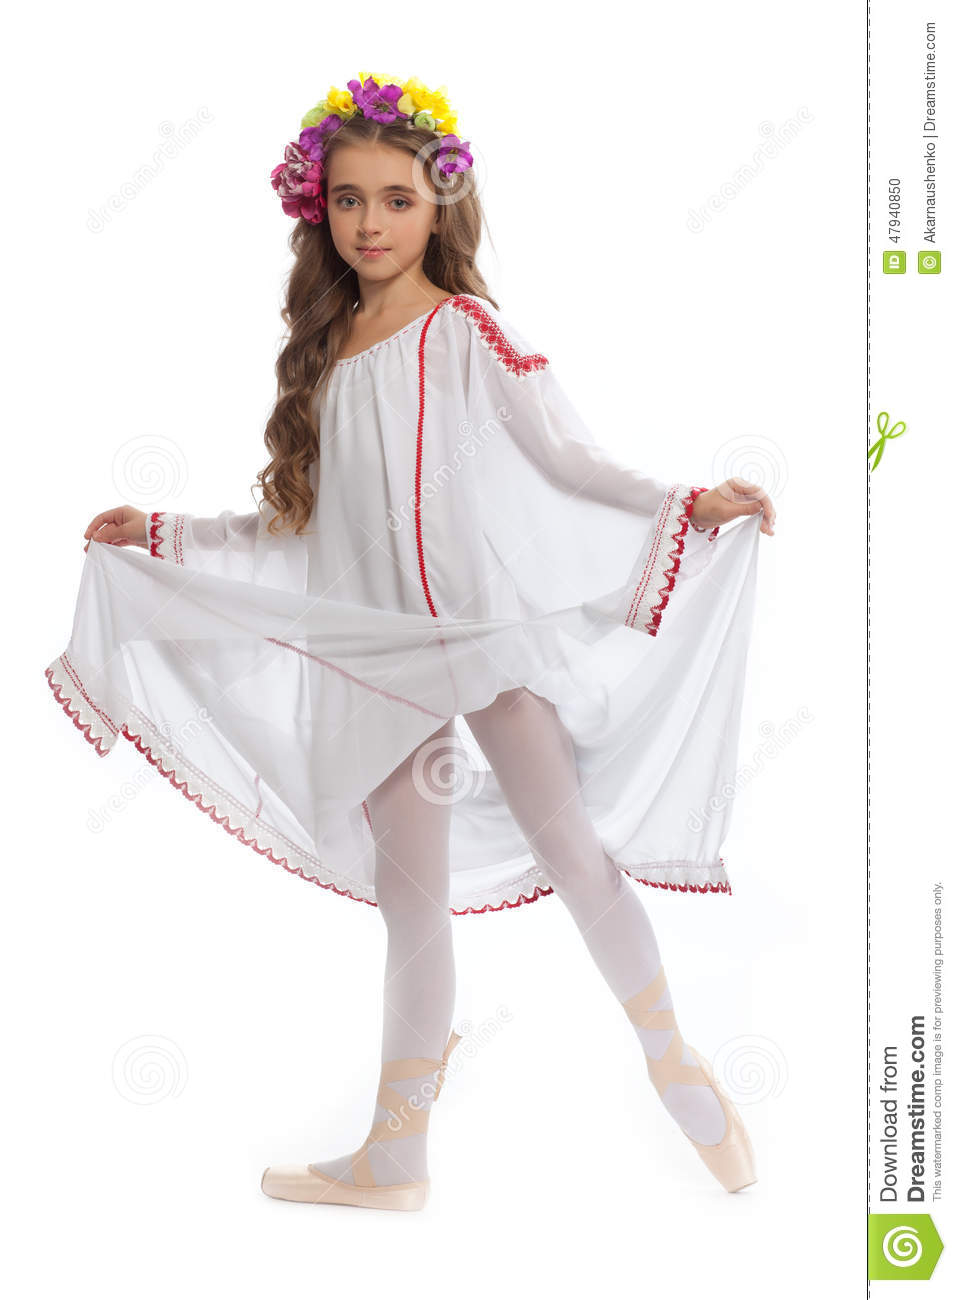 Beautiful Girl Teen In White Clothes On Pointe With Brown Hair And Wreath Of Flowers -2195